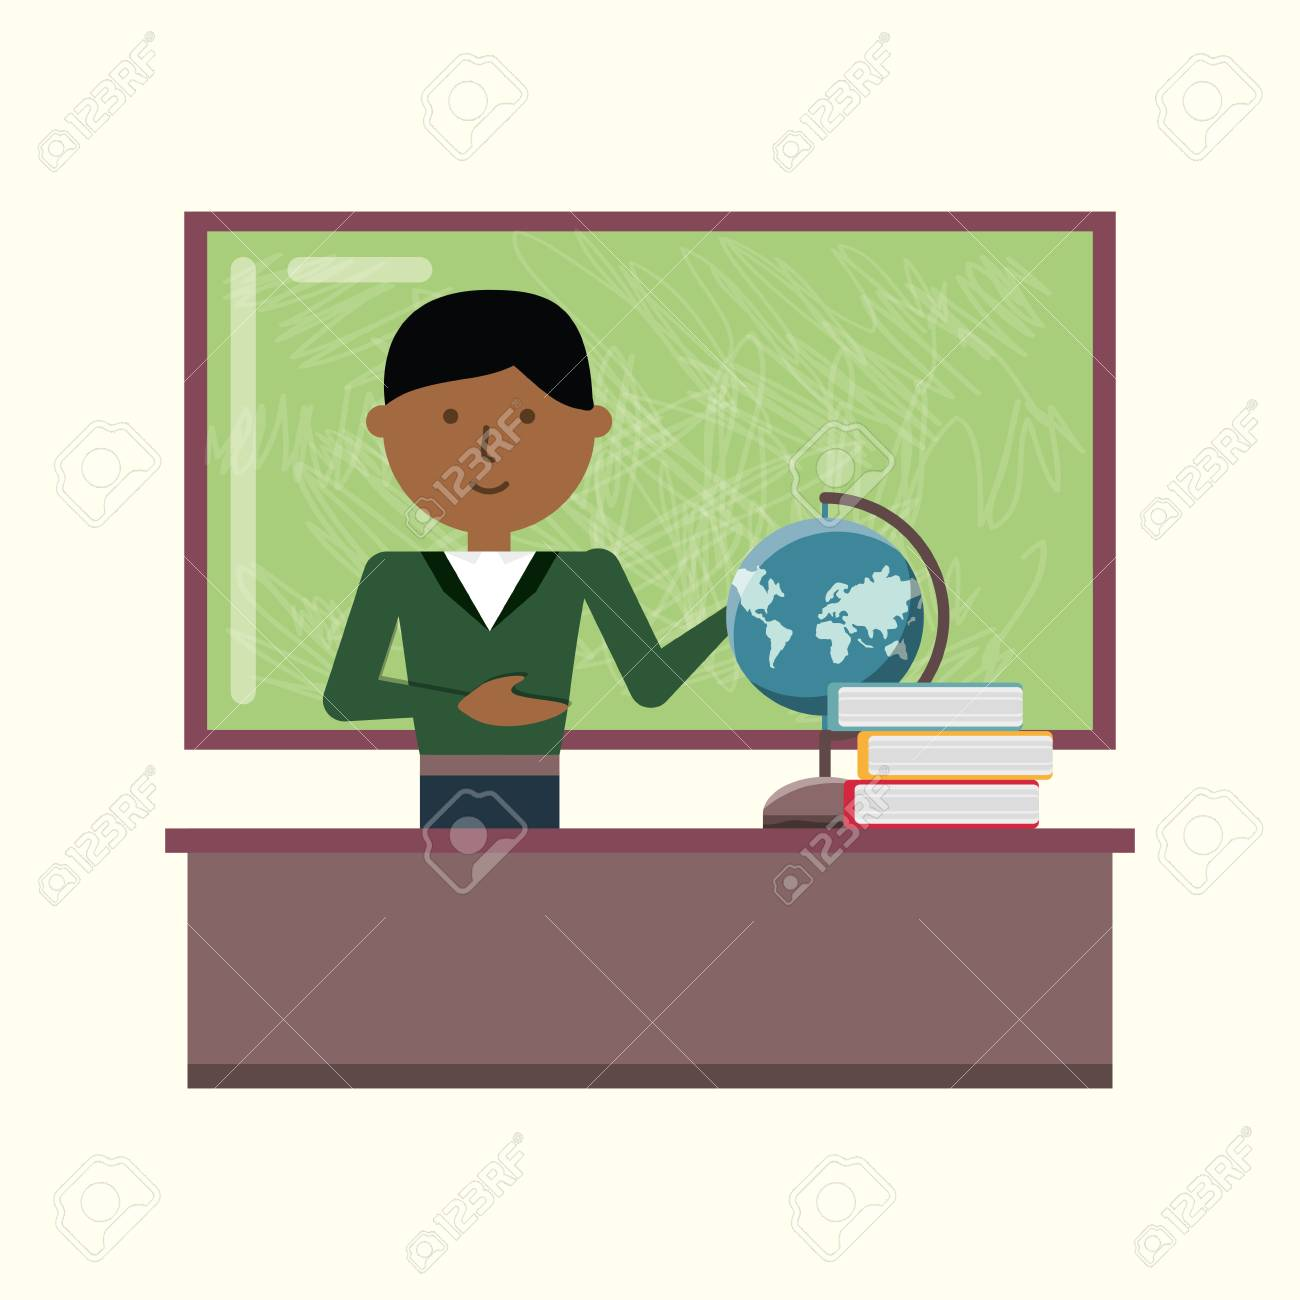 Cartoon School Teacher Standing At The Desk With Books And Geography